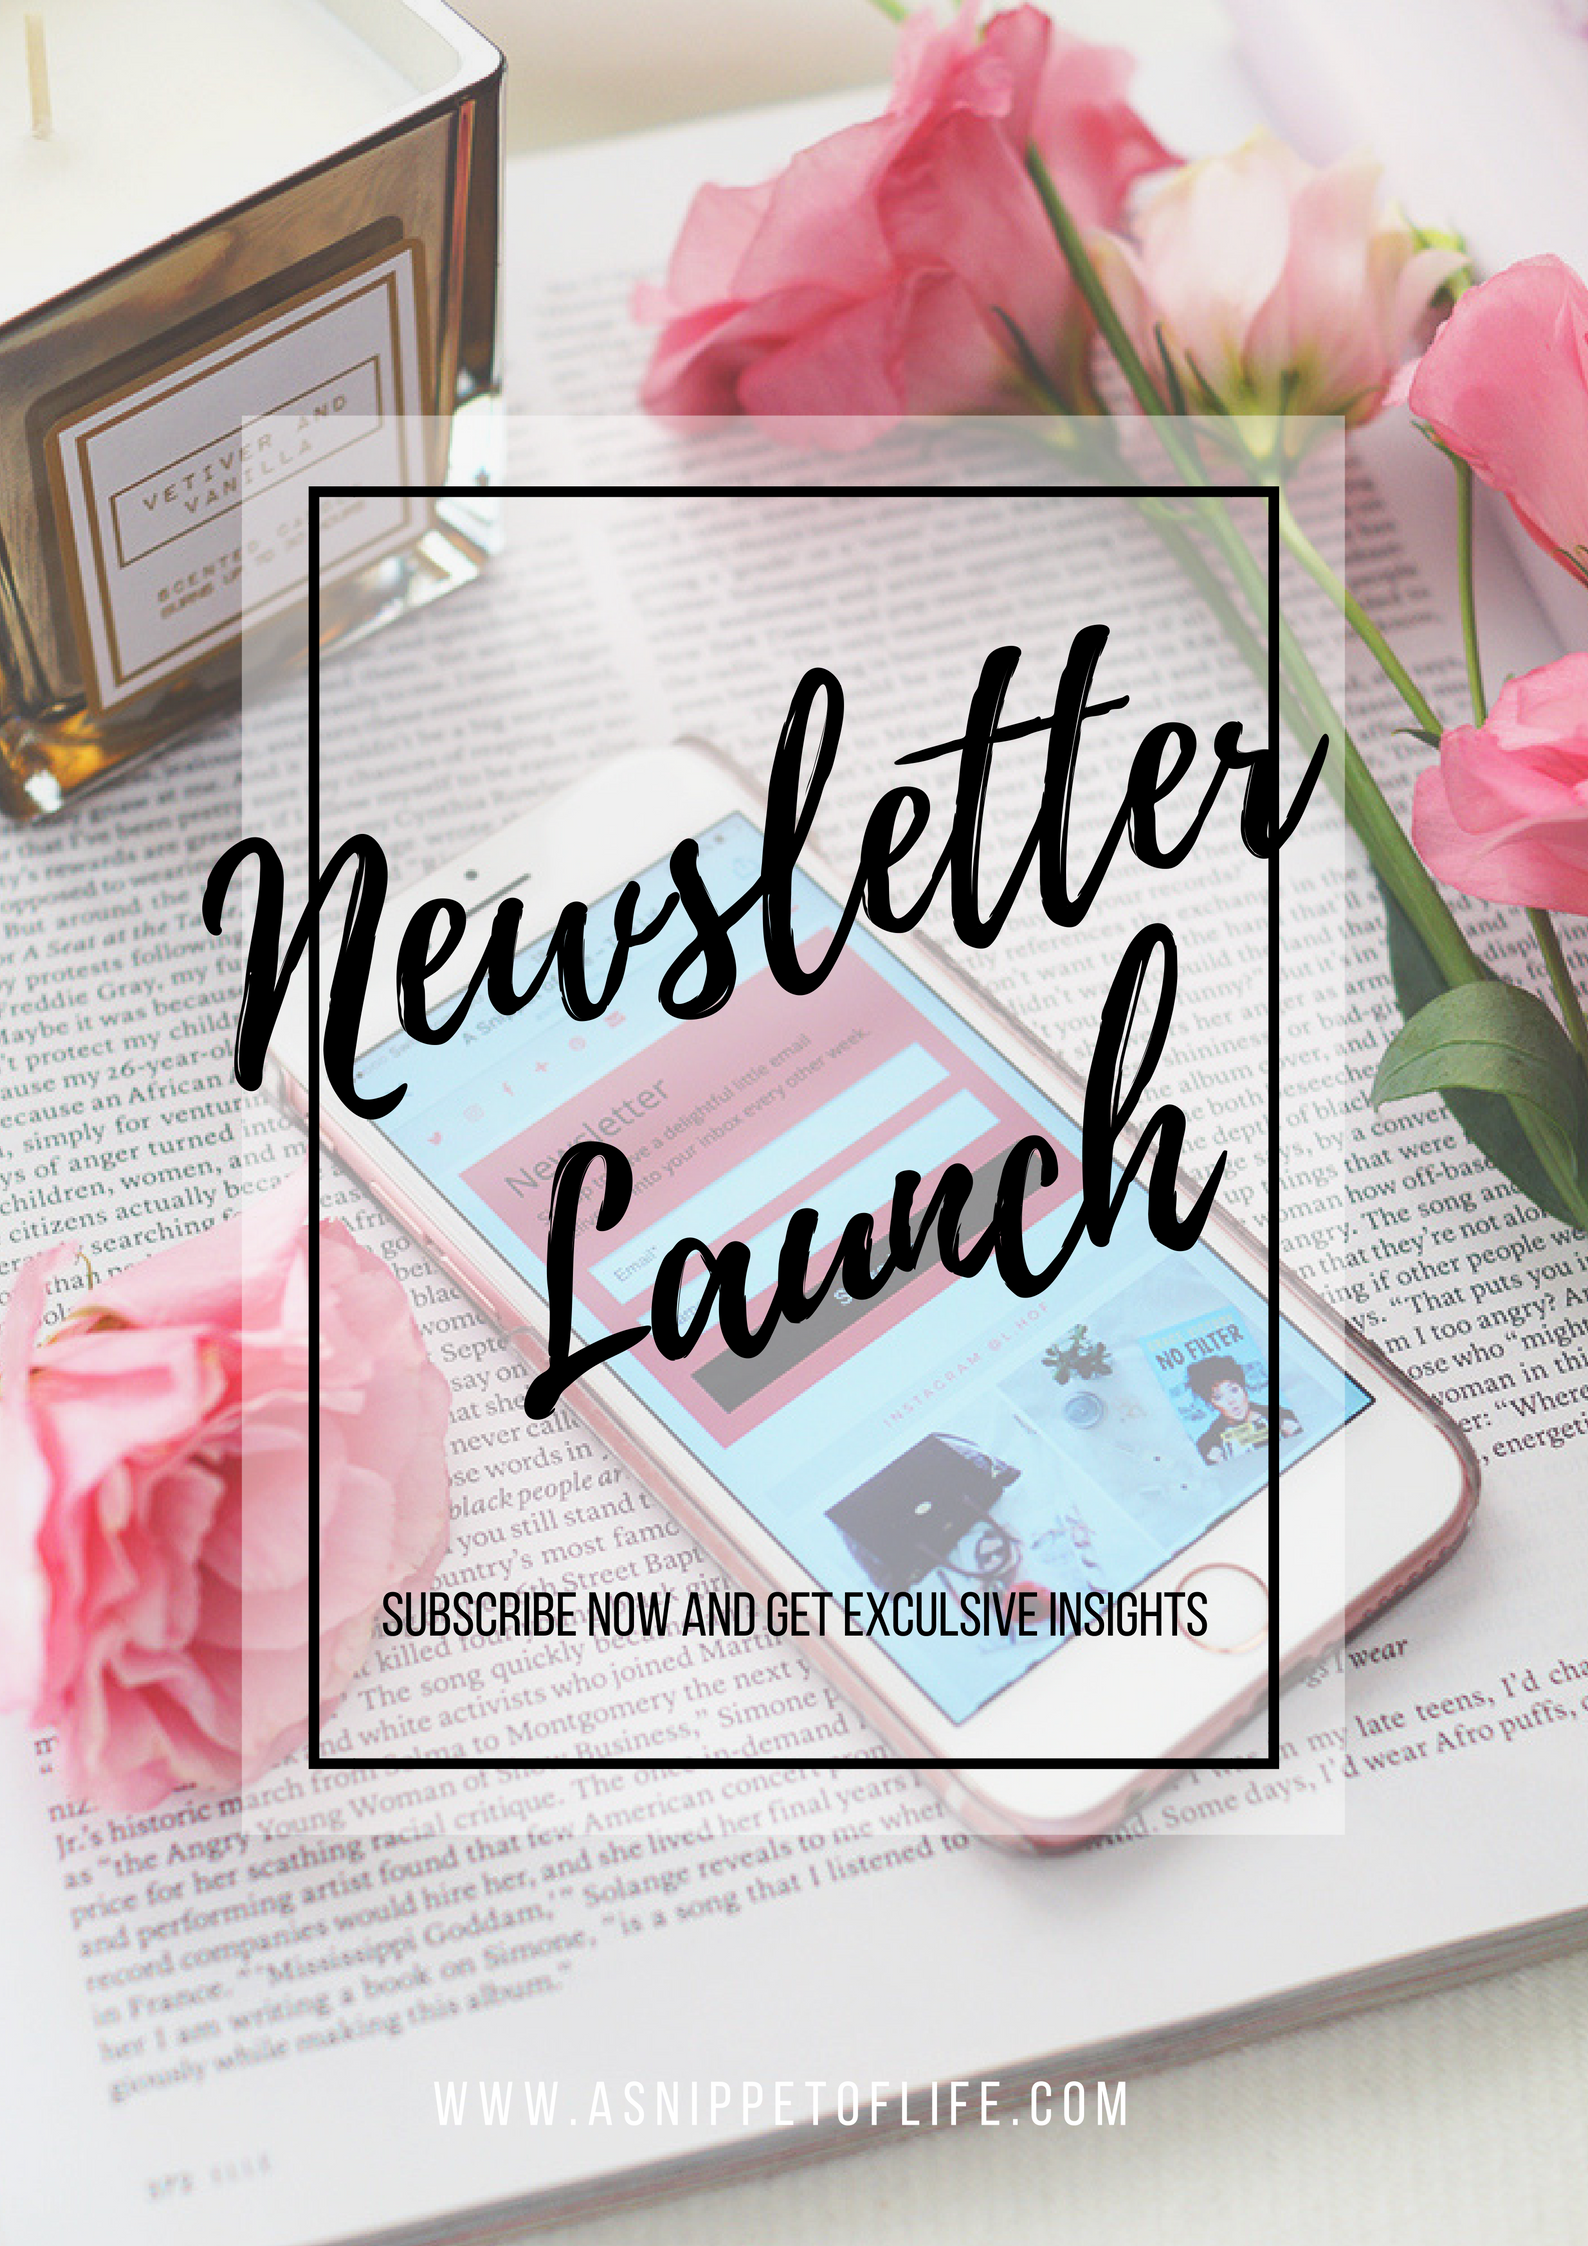 A Snippet of Life - Newsletter Launch